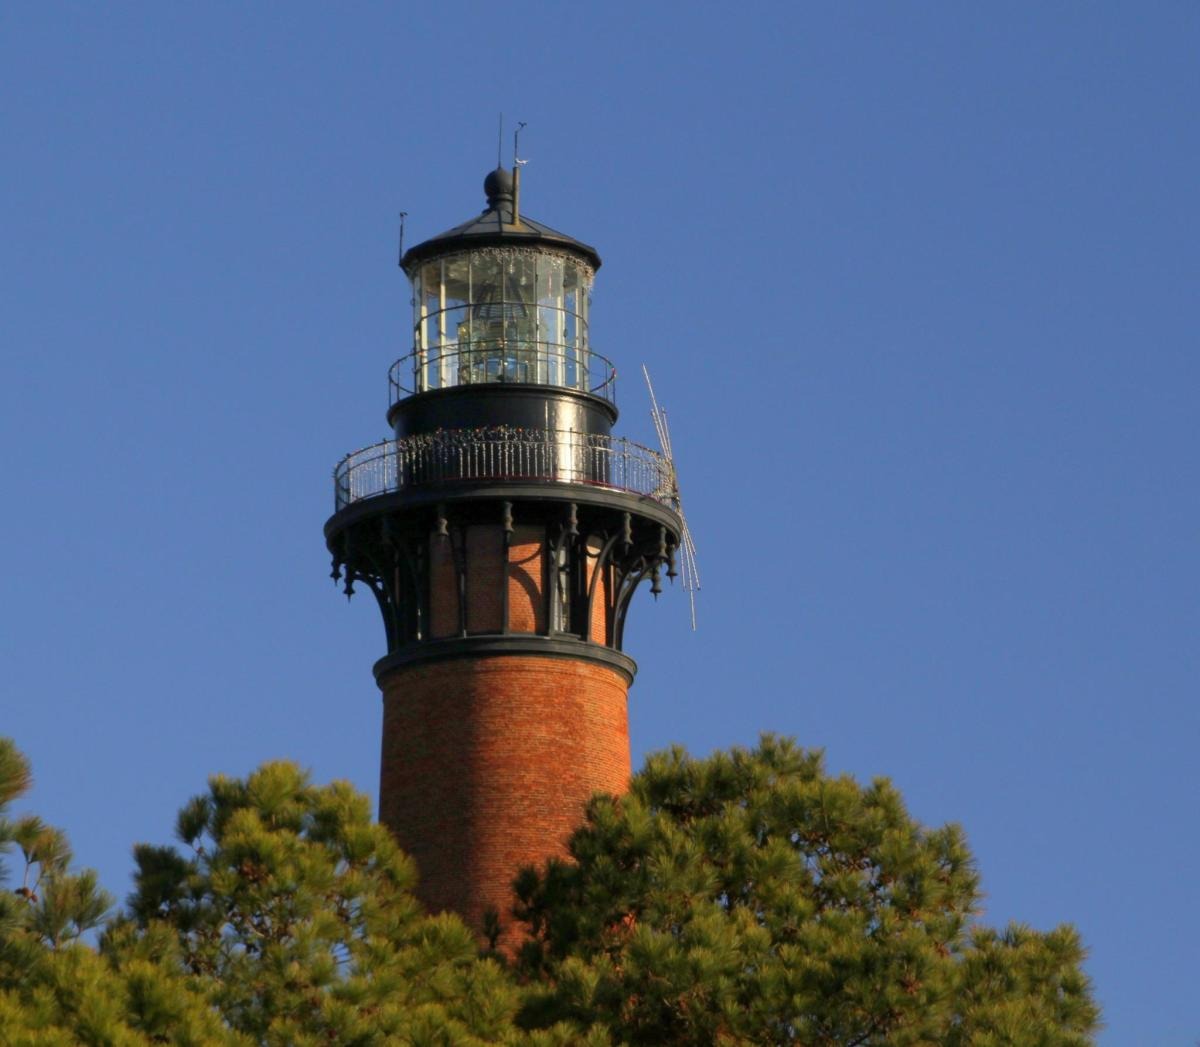 North Carolina's Currituck (Coralla) Lighthouse